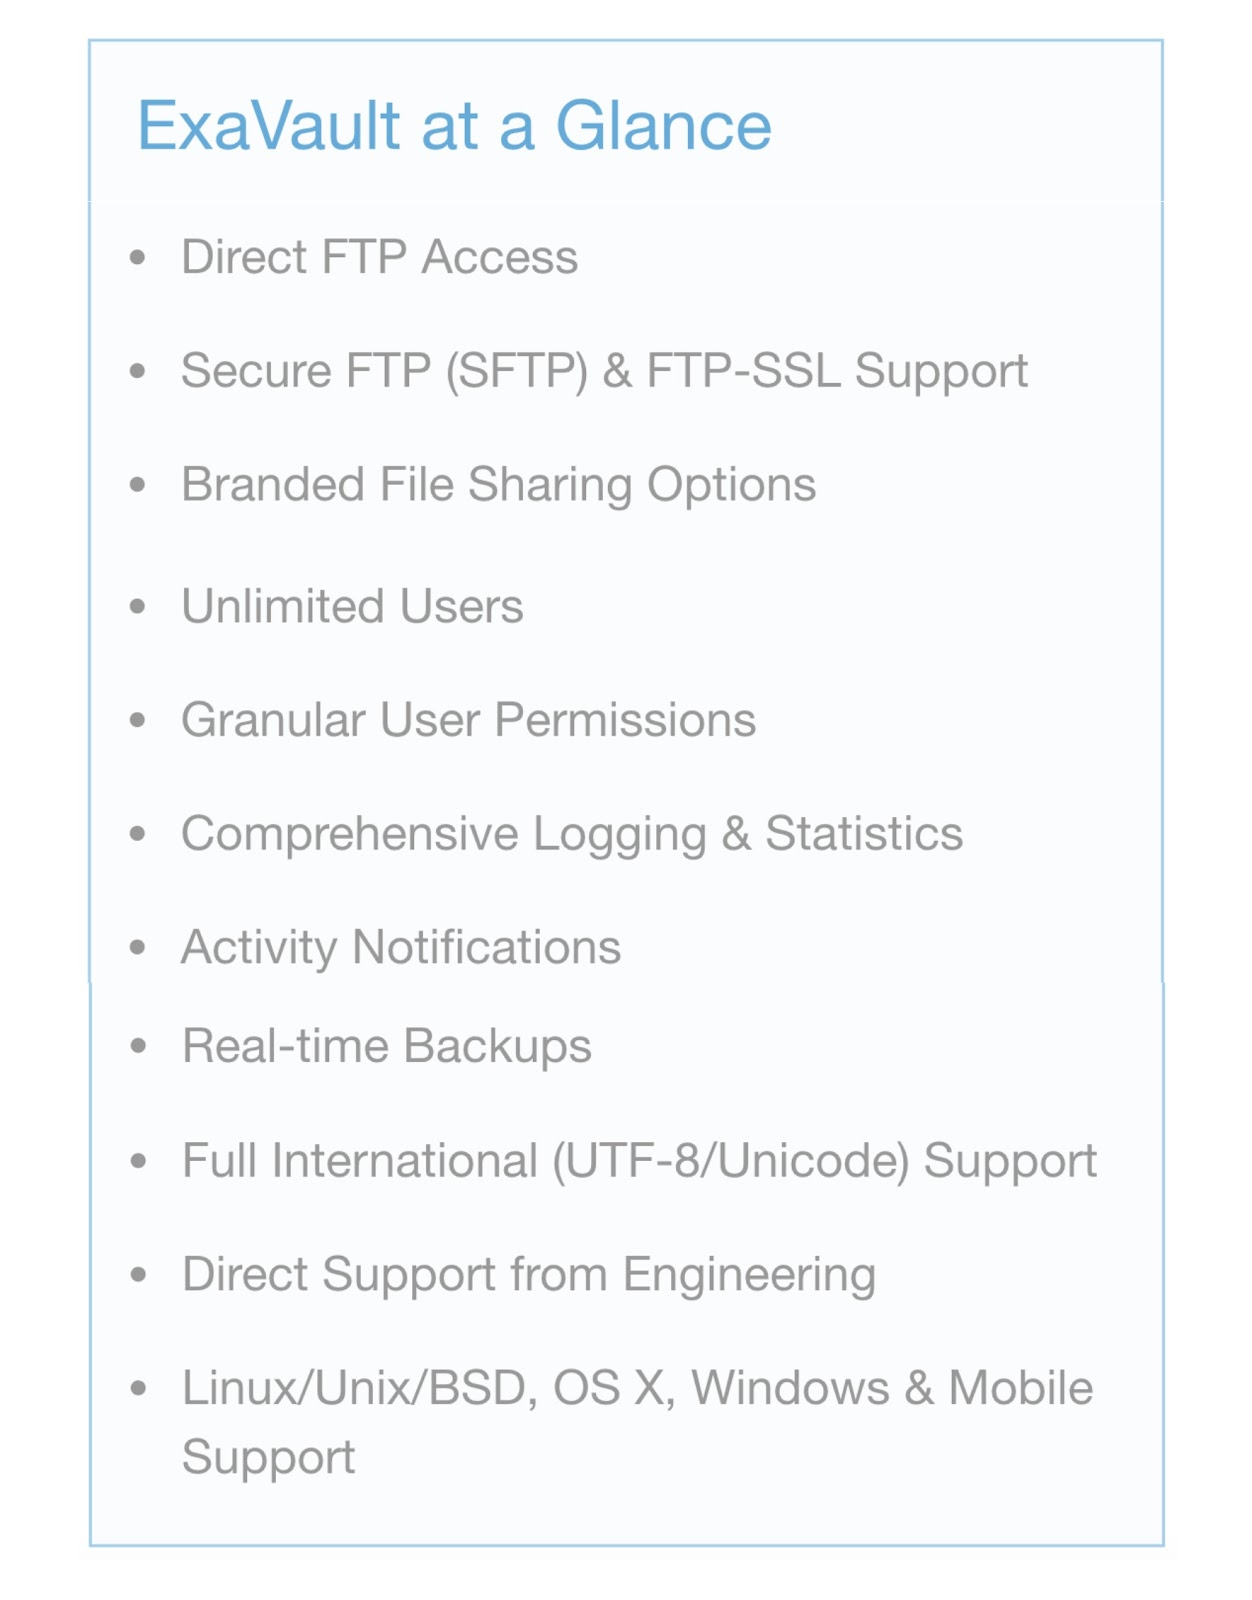 List of features included with ExaVault FTP service.